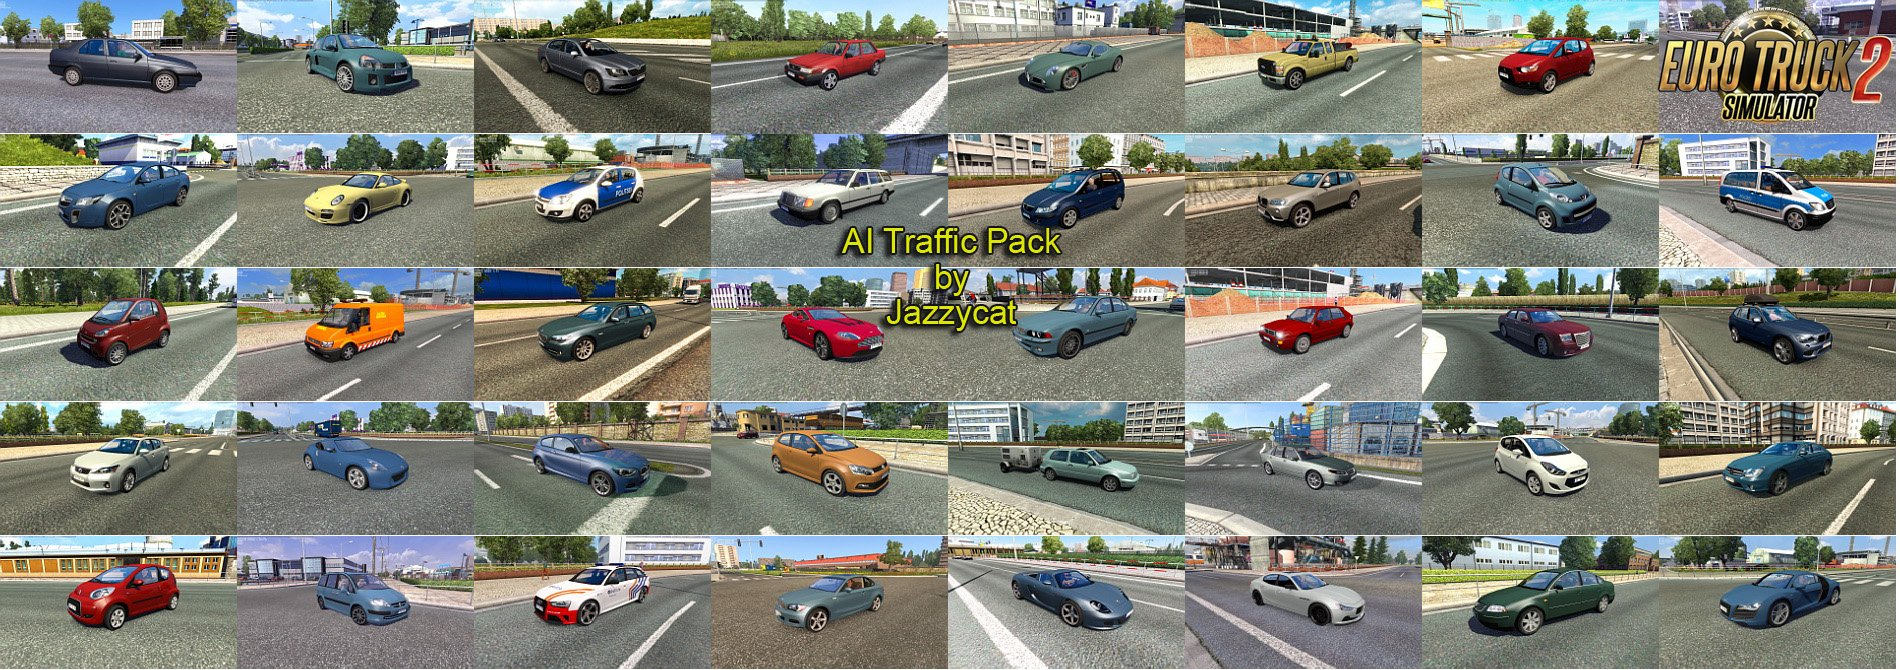 AI Traffic Pack v6.4 by Jazzycat